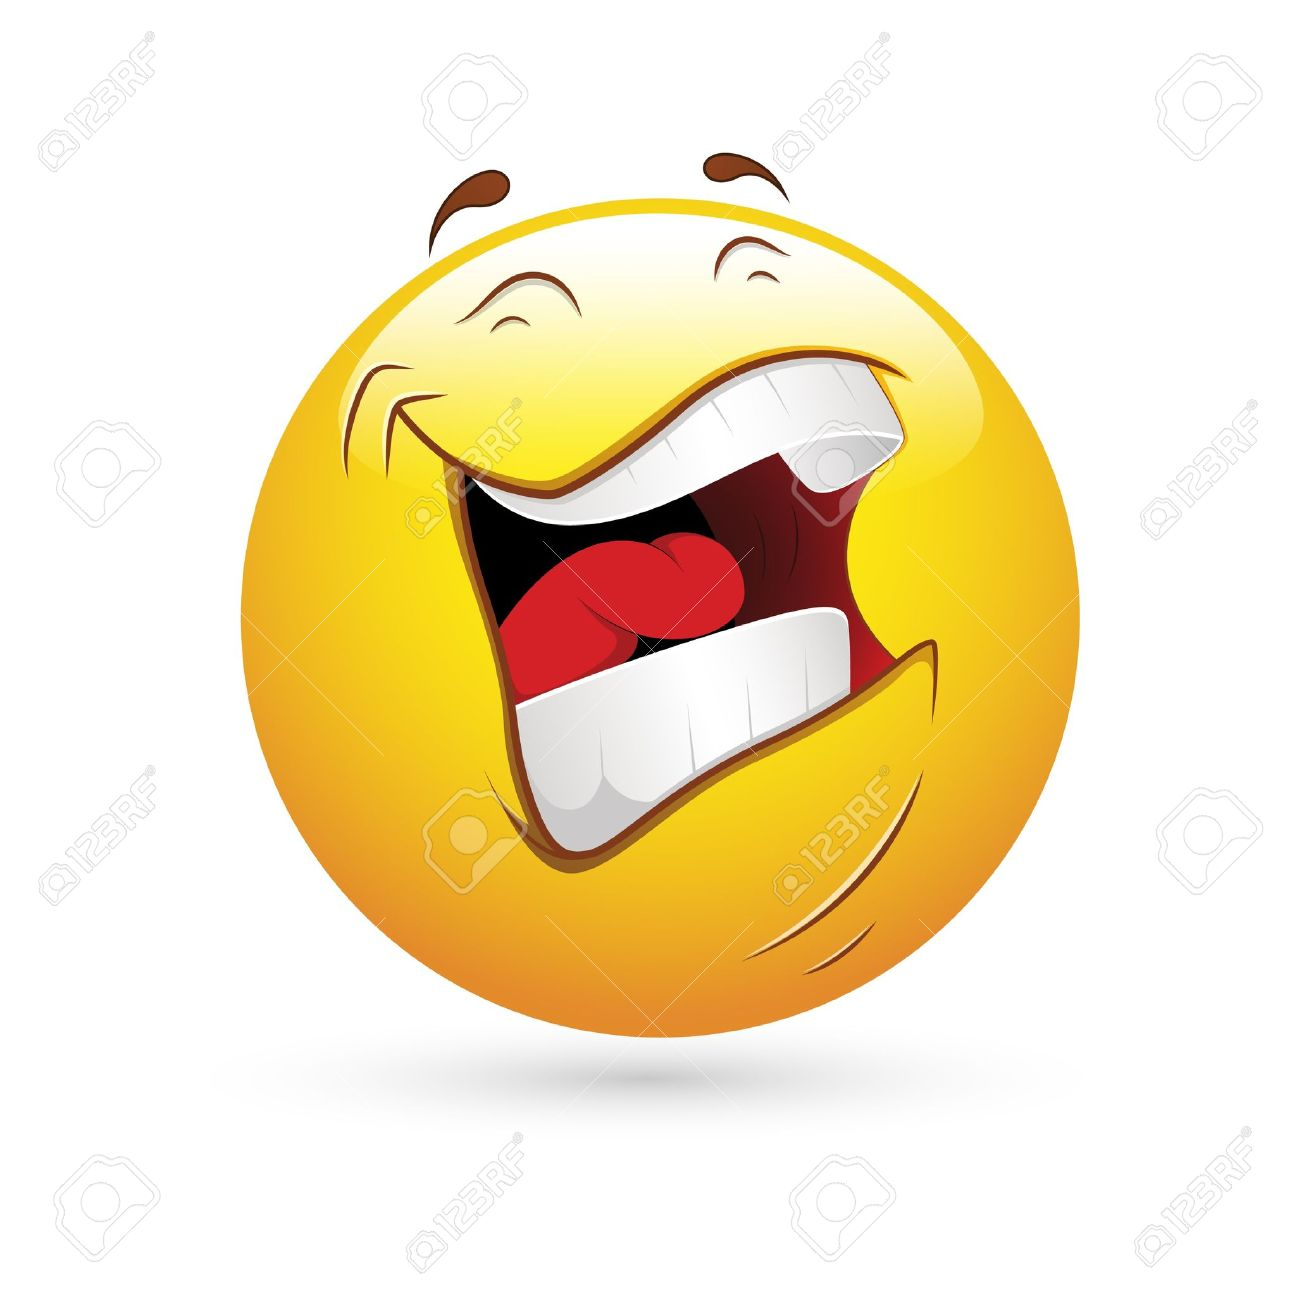 Smiley Emoticons Face Vector - Laughing - 15808664